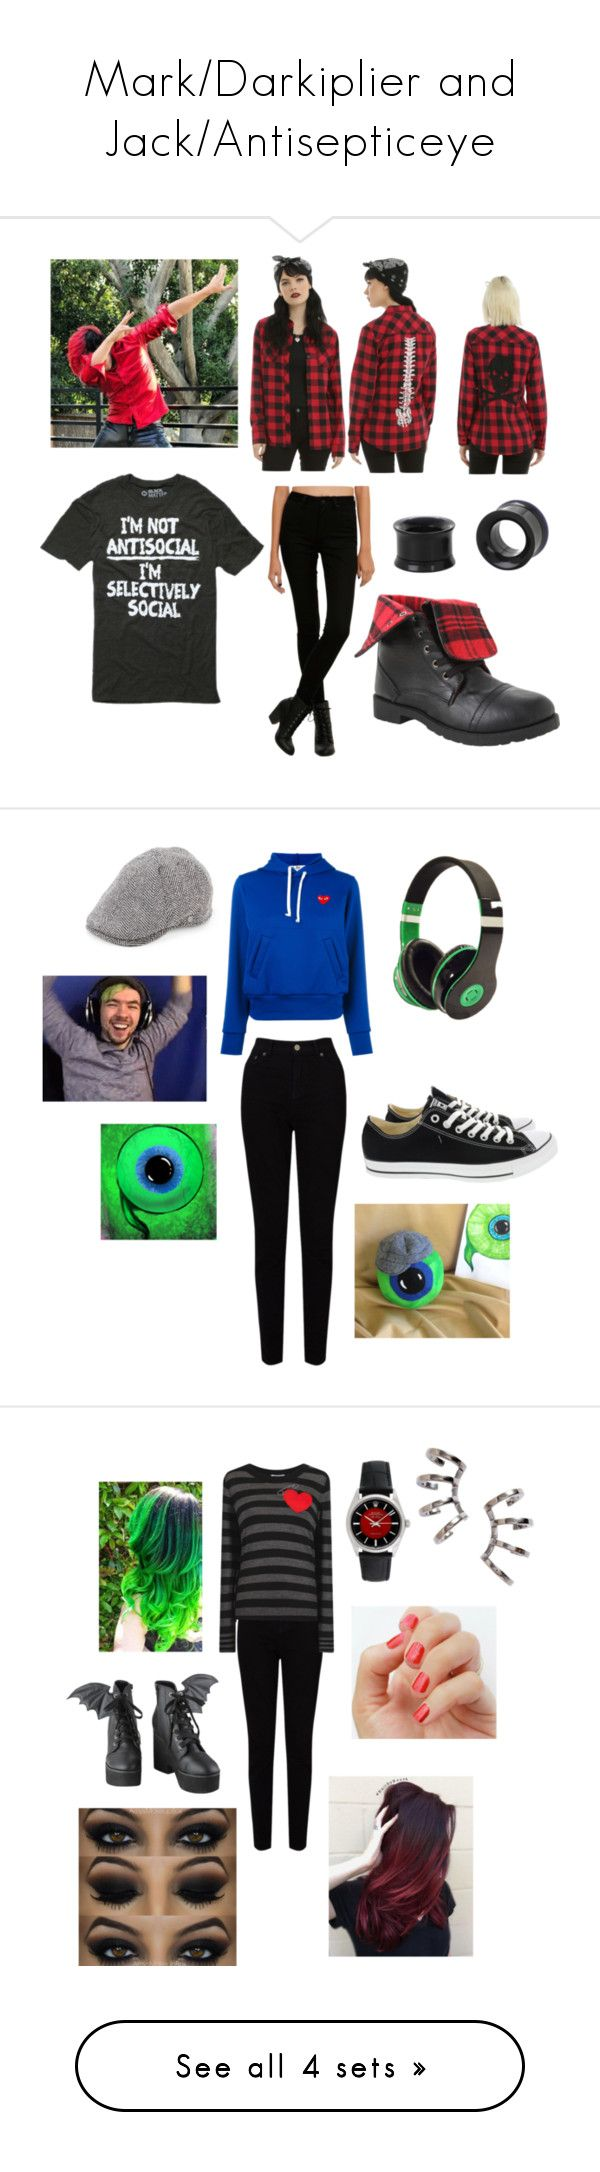 """""""Mark/Darkiplier and Jack/Antisepticeye"""" by orioli ❤ liked on Polyvore featuring EAST, Play Comme des Garçons, Converse, Block Headwear, Sonia by Sonia Rykiel, Iron Fist, SoGloss, Nadri, Rolex and Urban Outfitters"""